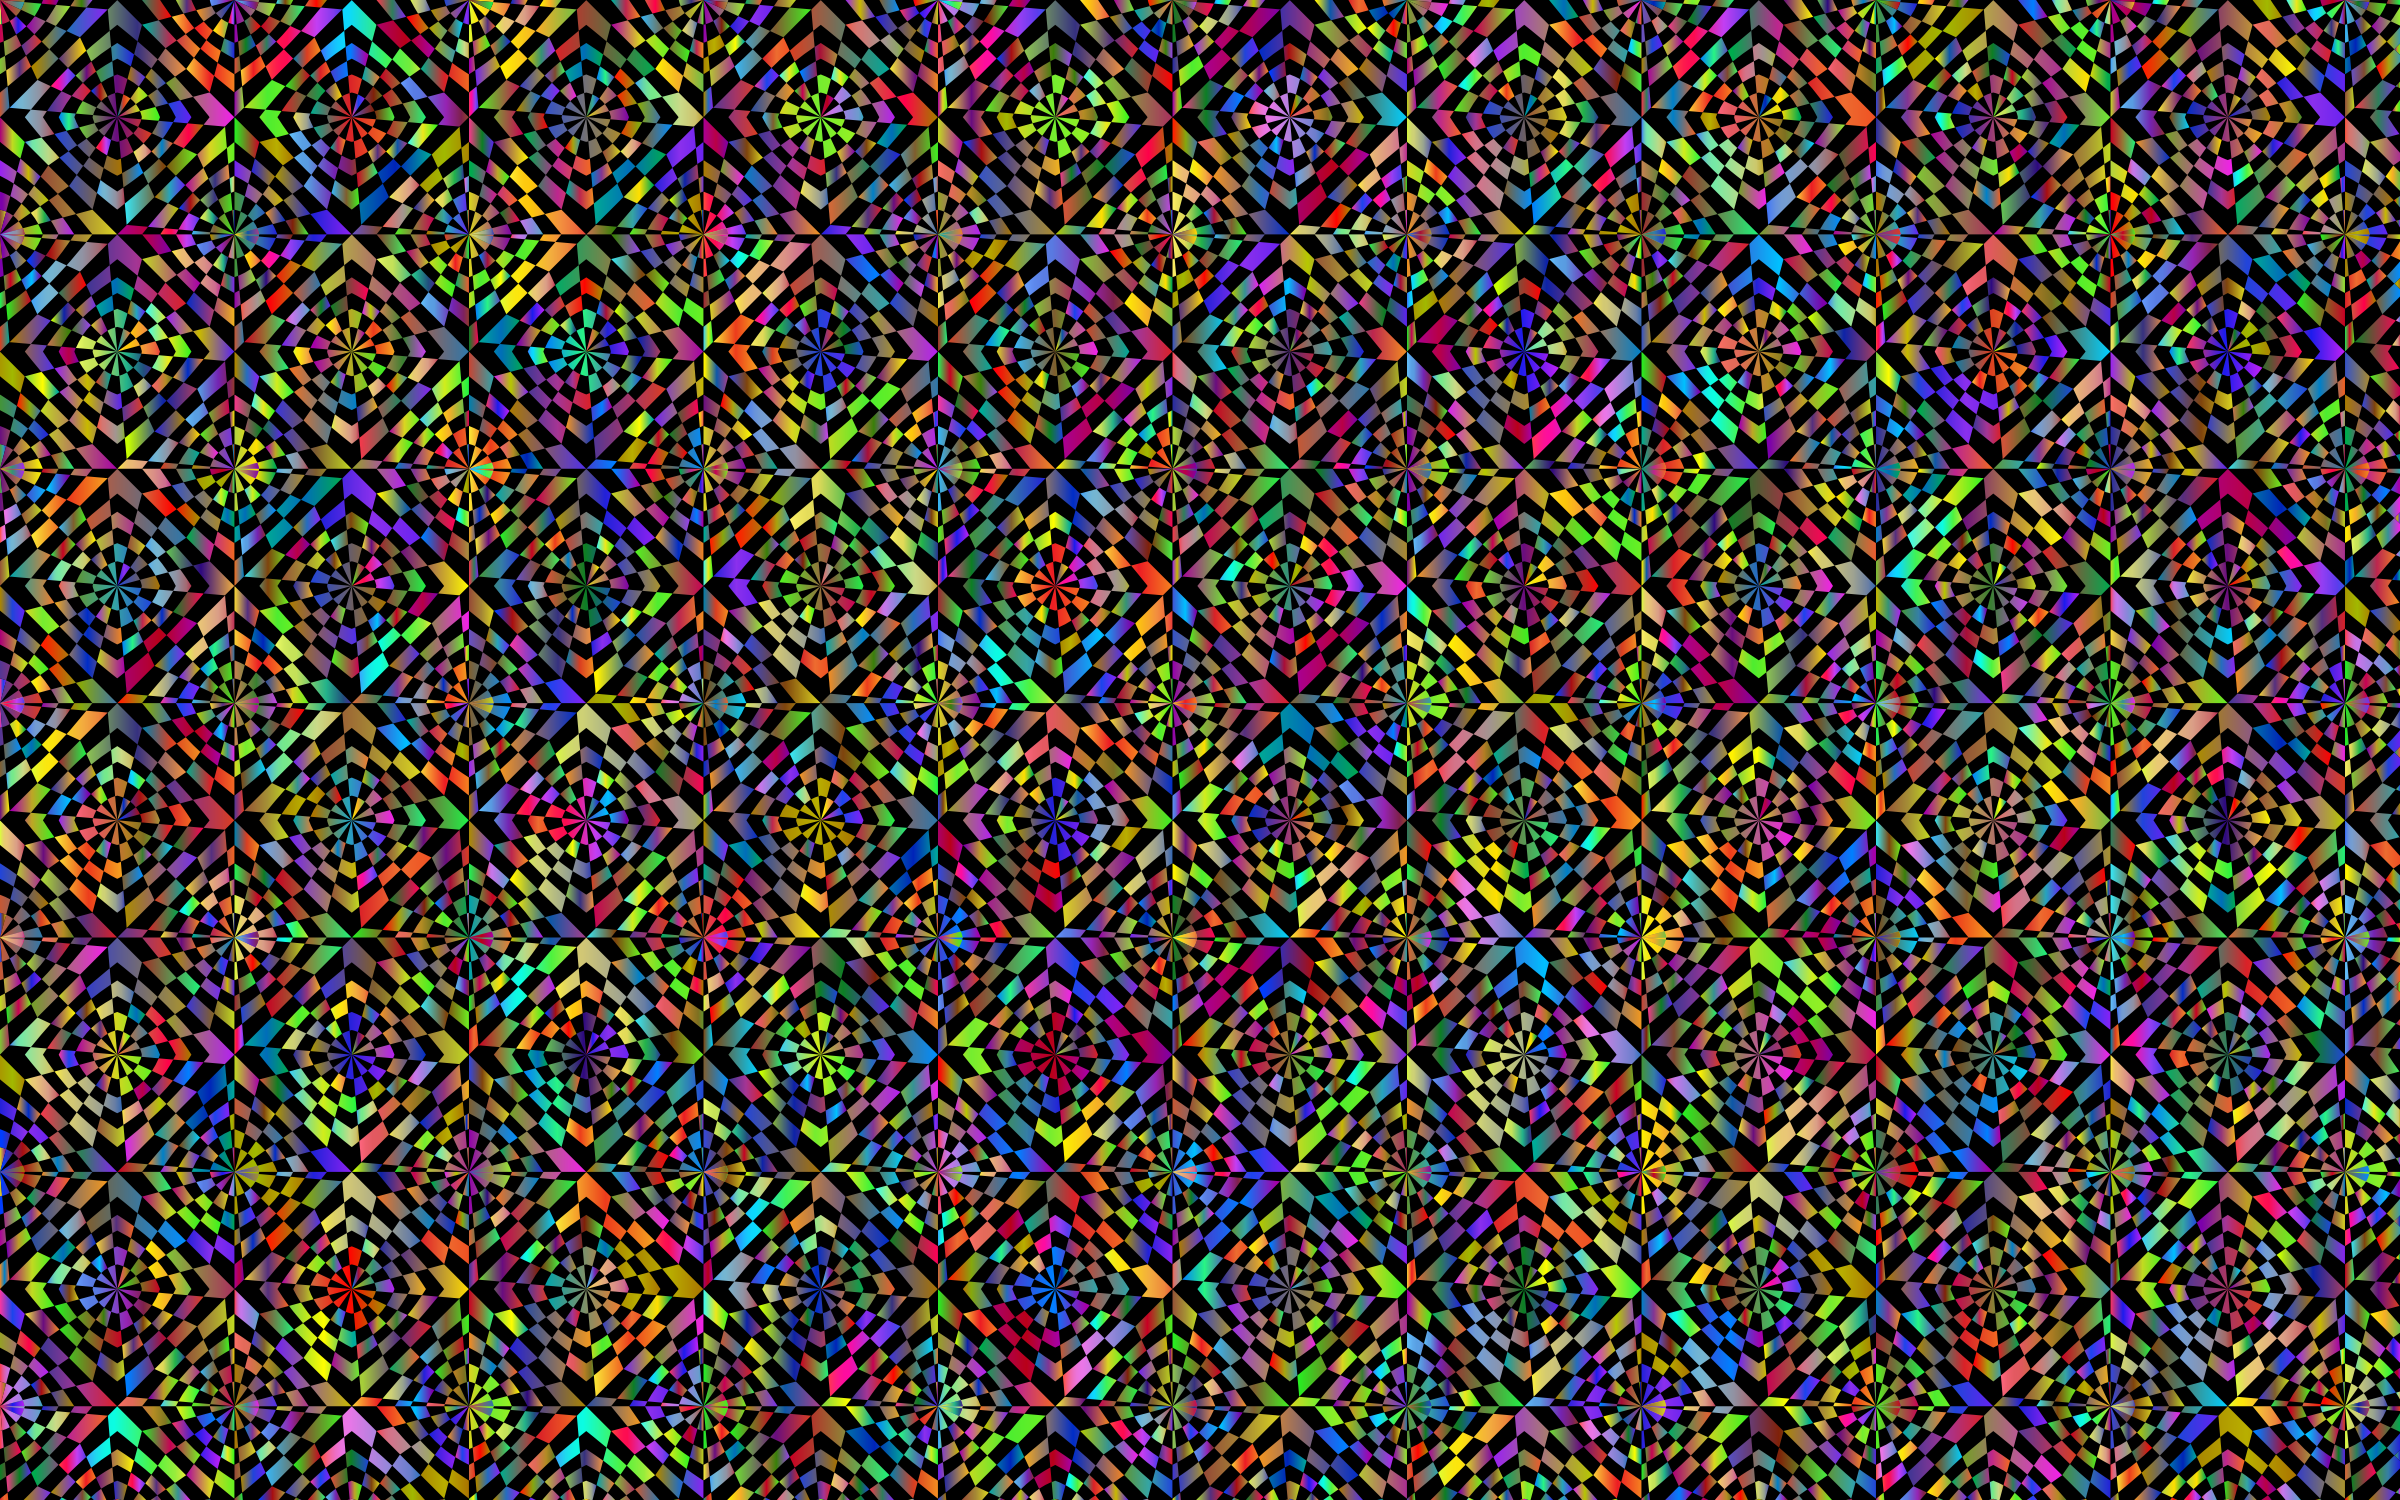 Abstract Distorted Checkerboard Pattern Polyprismatic by GDJ